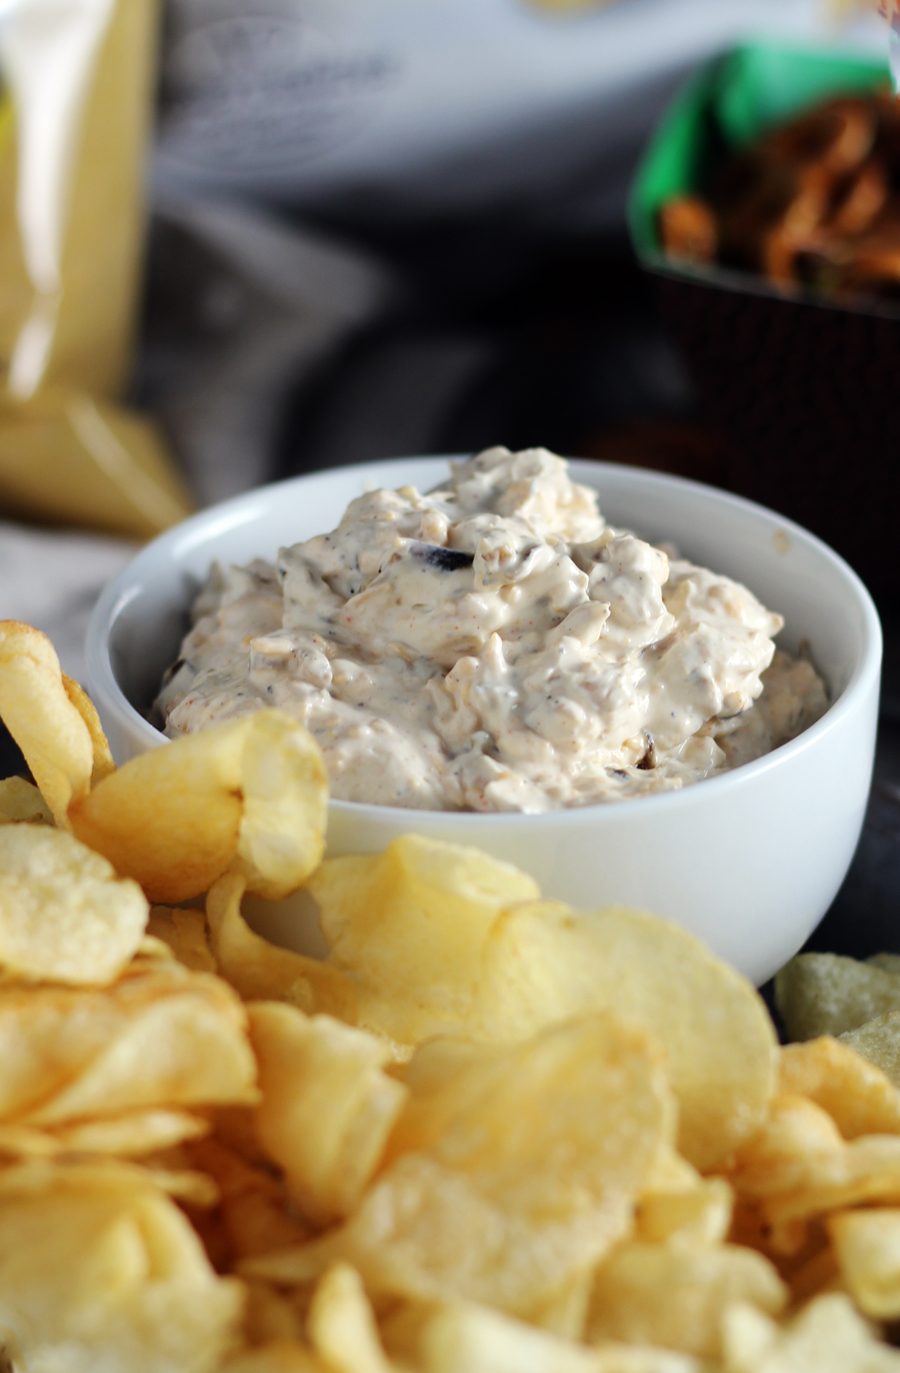 Can't wait to dig into this Sour Cream + Cheddar French Onion Dip.